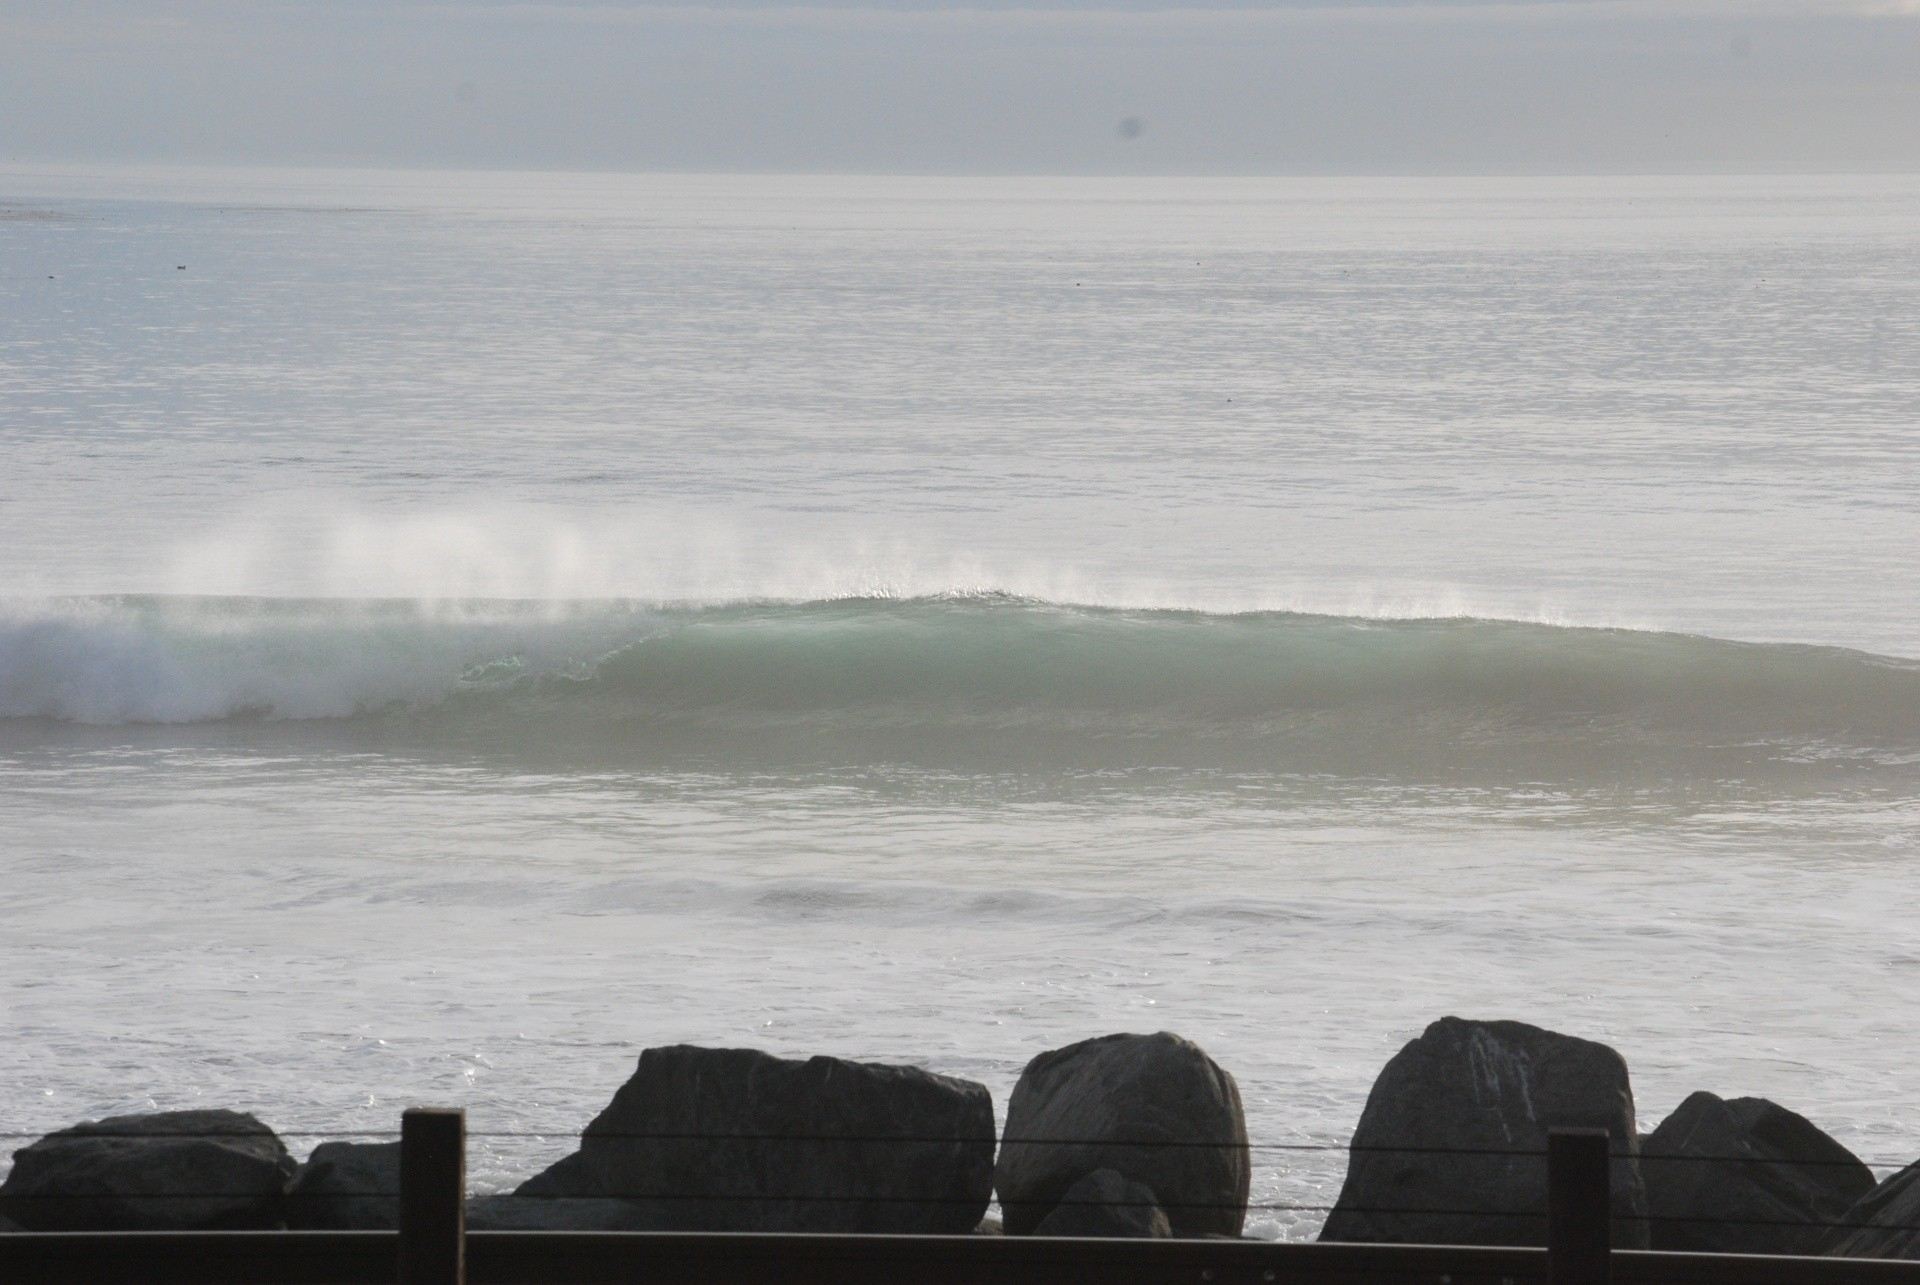 Surfer's photo of San Clemente Pier